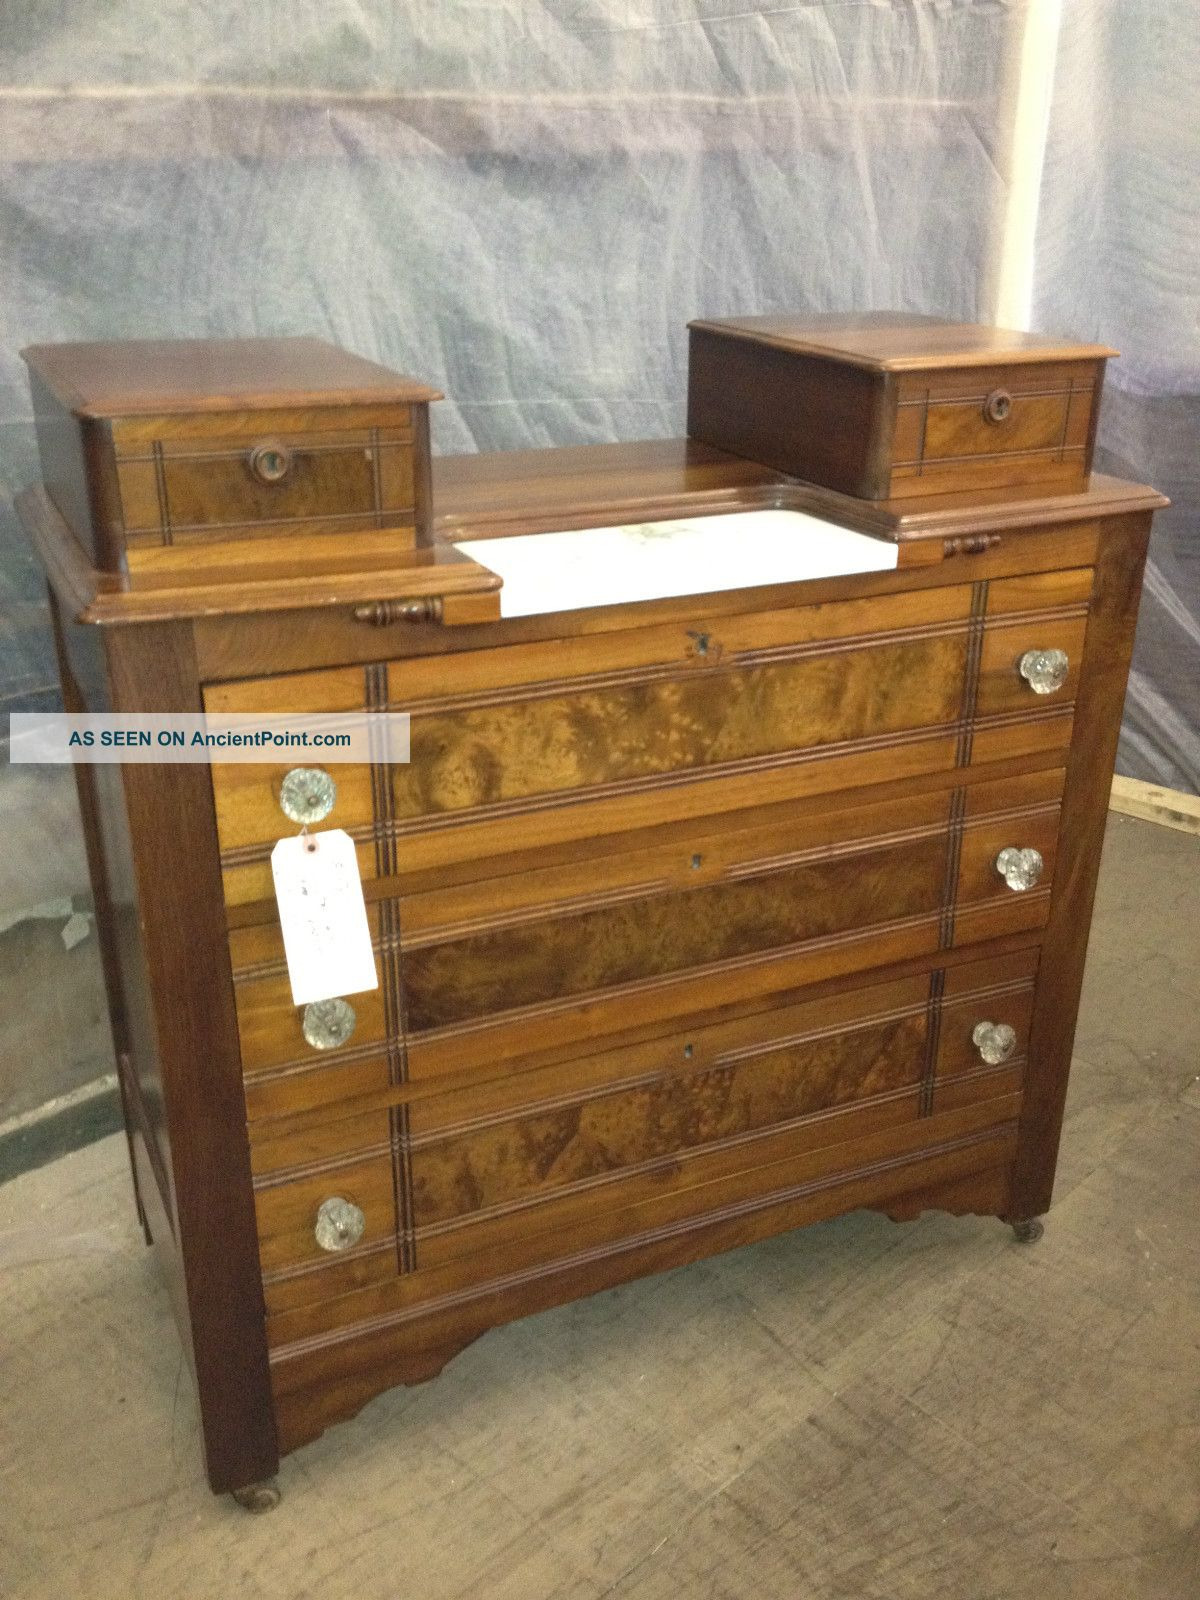 victorian antique marble top bedroom furniture dresser chest refinished 2 lgw